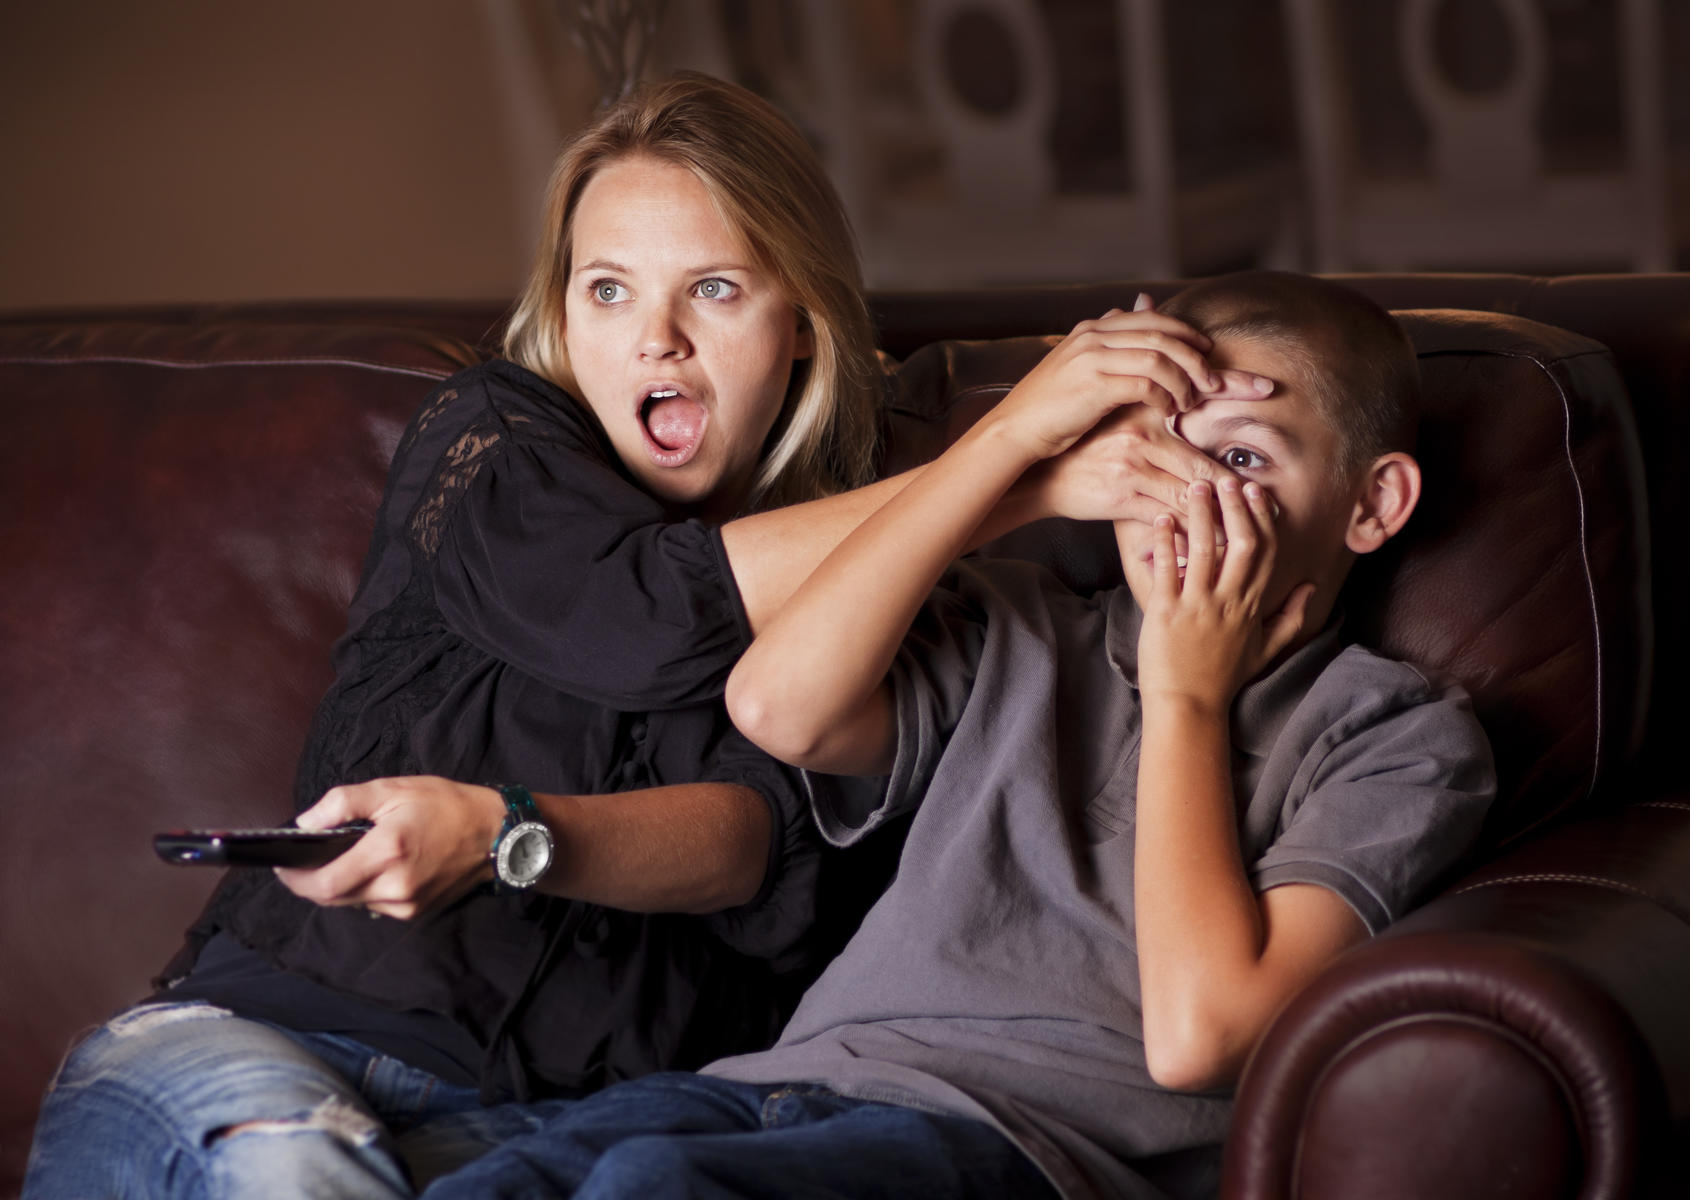 Mom Covers Sons Eyes Watching TV Surprised